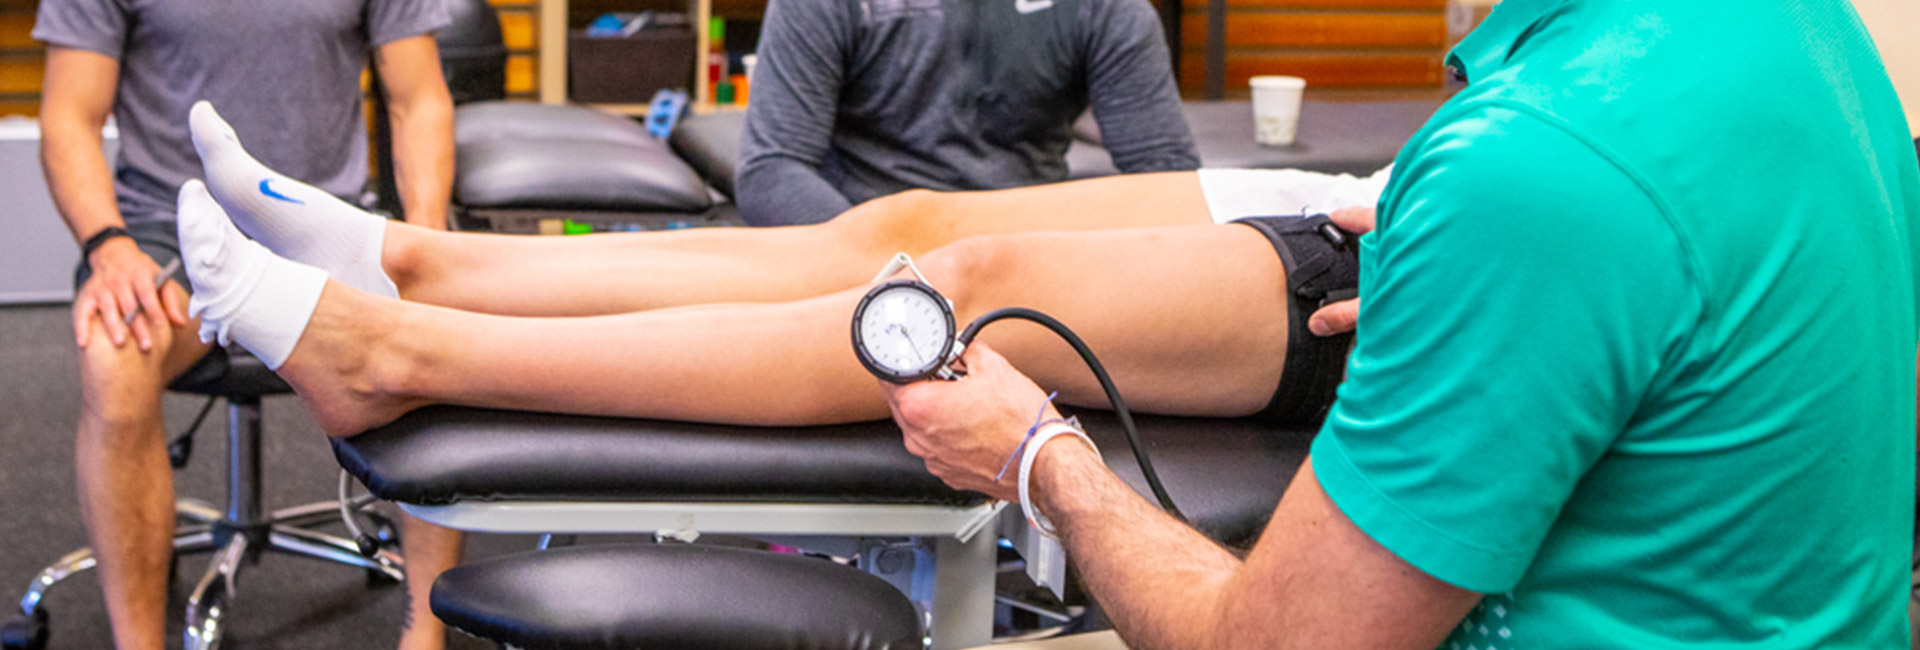 Blood-Flow-Restriction-Training-Therapy---Therapeutic-Associates-Physical-Therapy